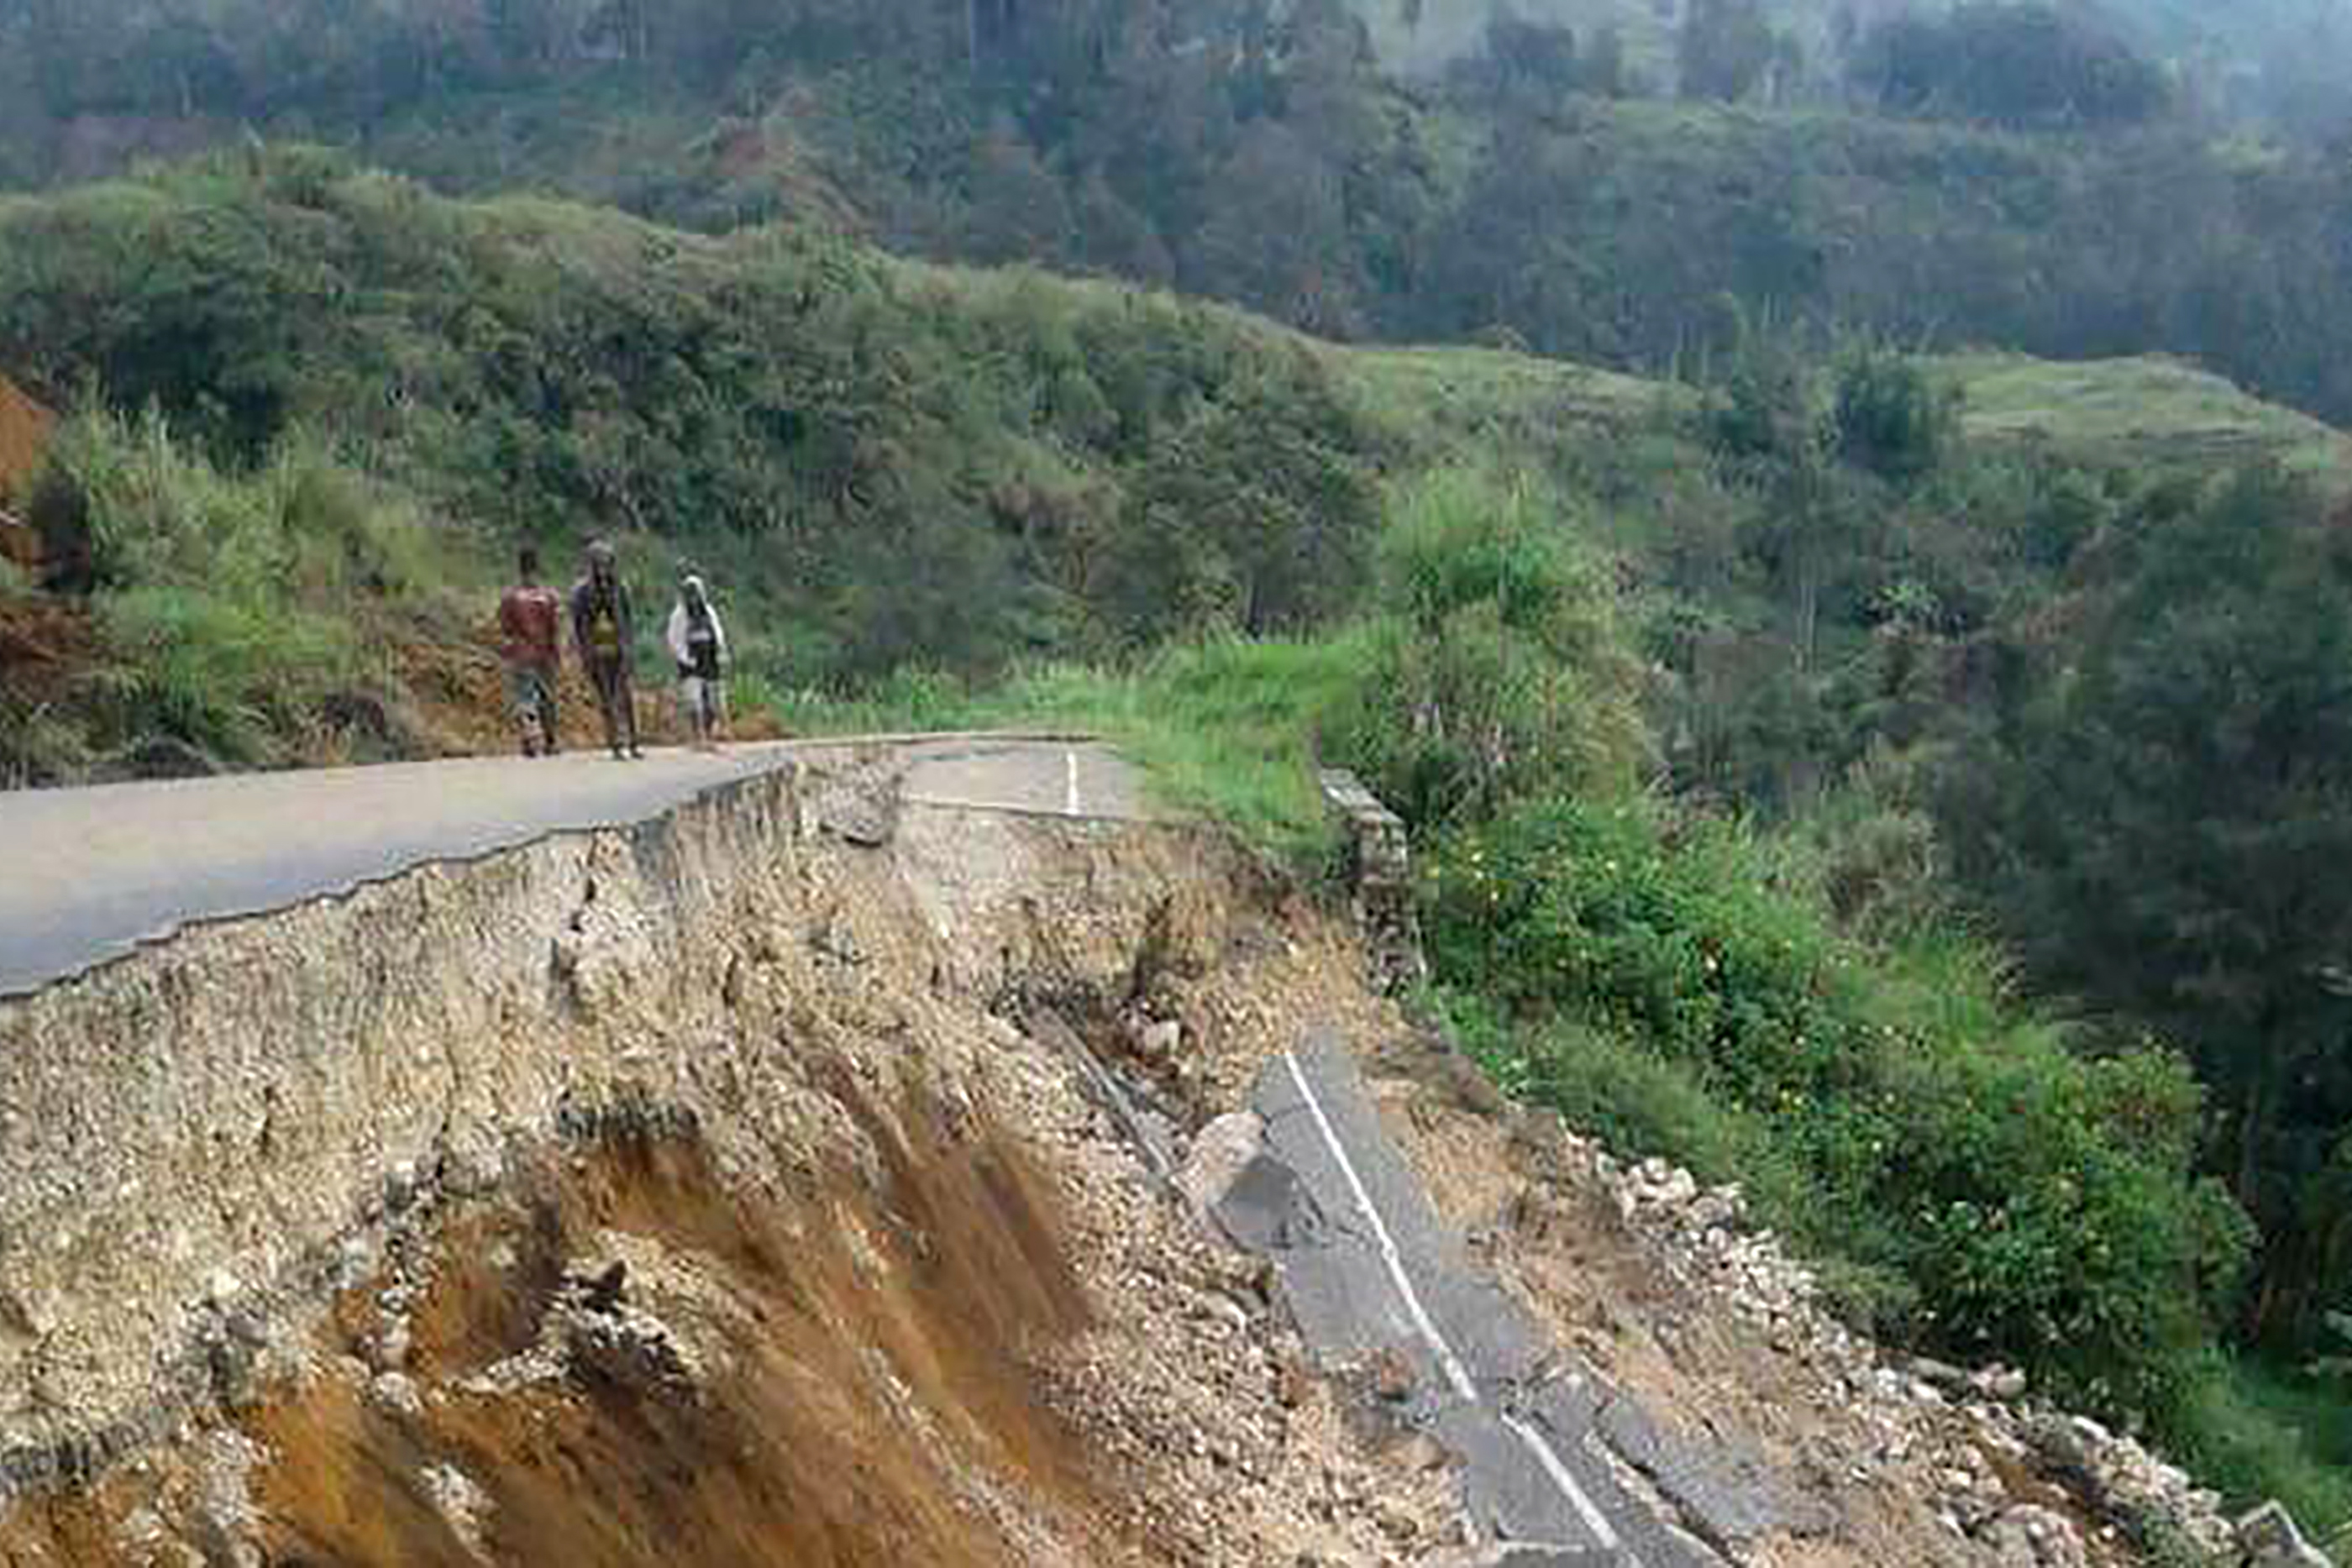 This photo taken on Feb. 27, 2018 shows damage to a road near Mendi in Papua New Guinea's highlands region after a 7.5-magnitude earthquake.